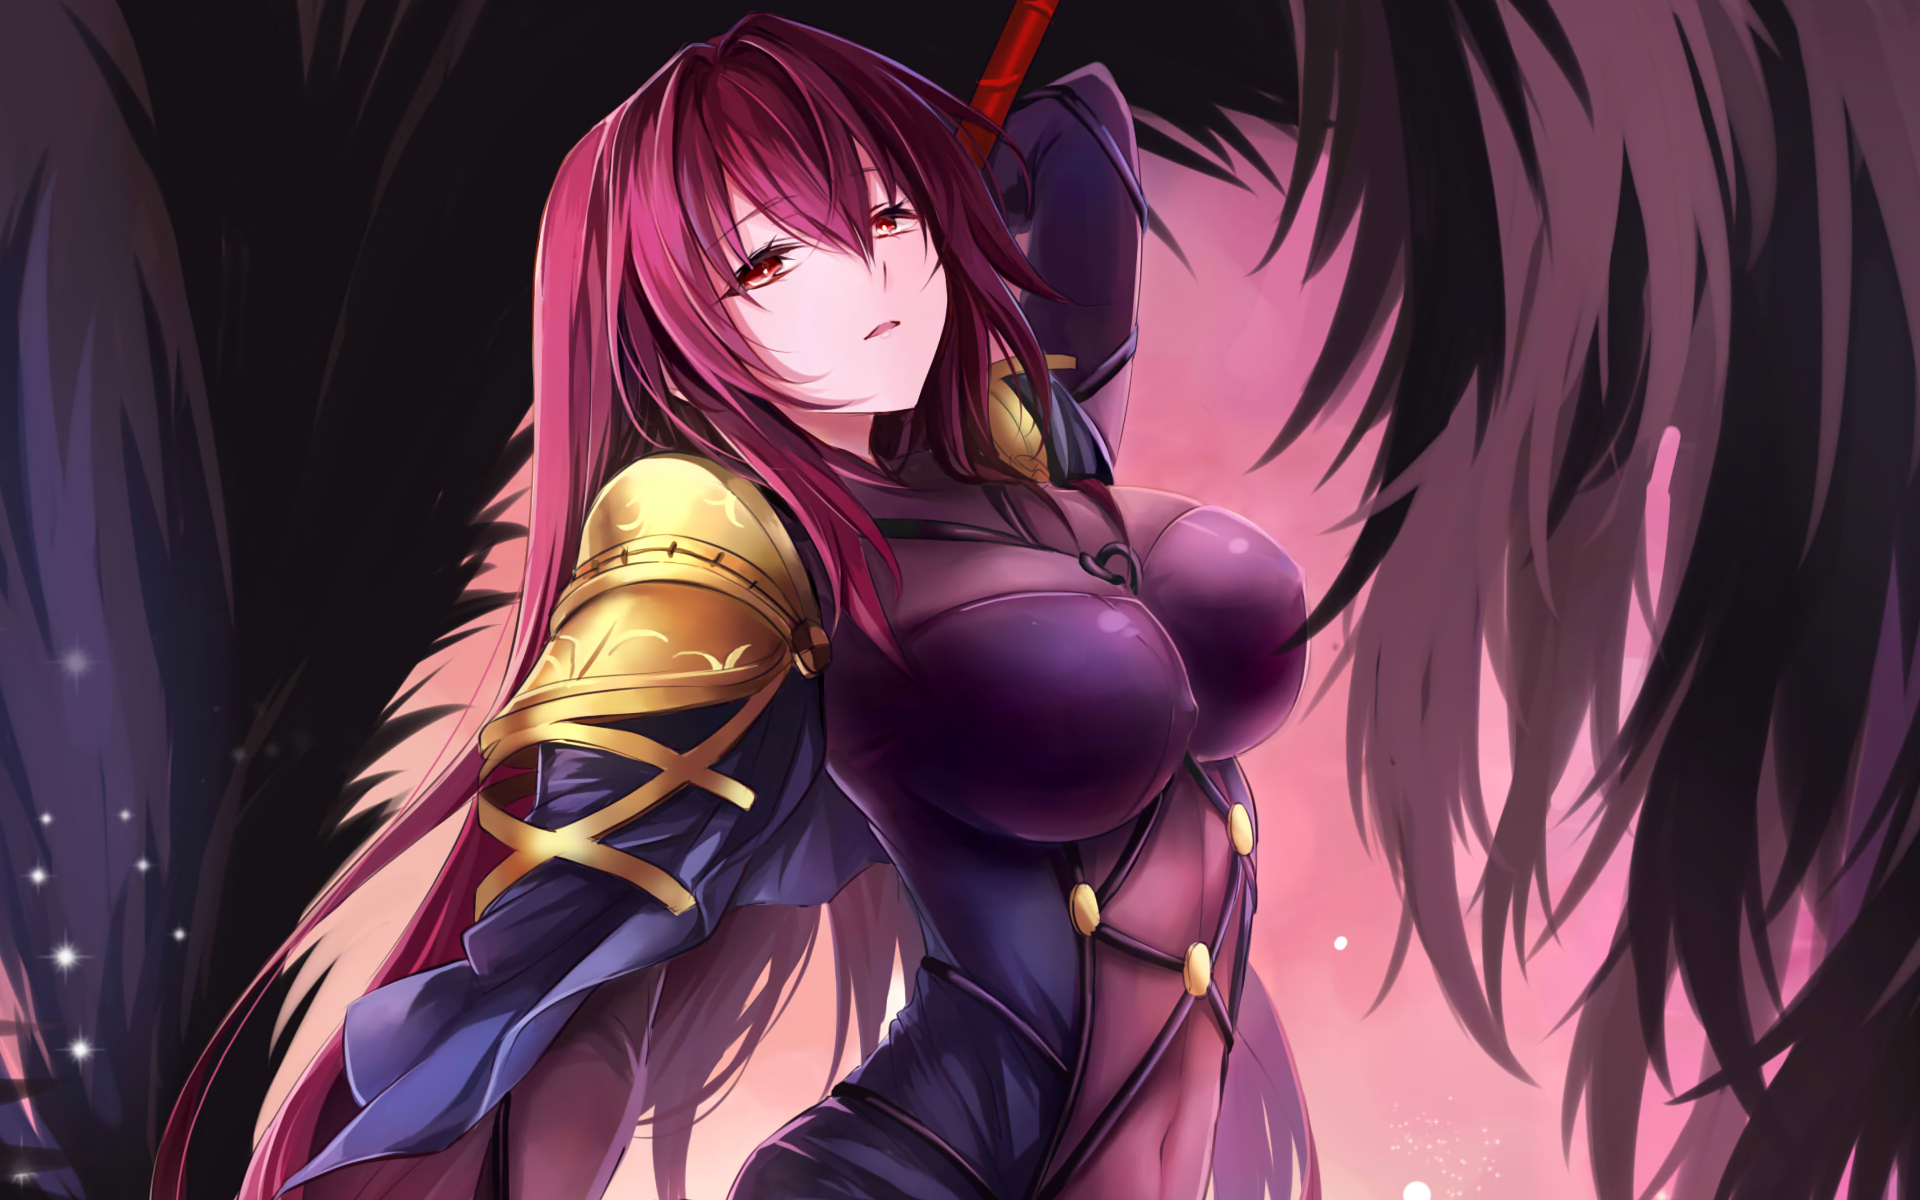 81 Scathach Fate Grand Order Hd Wallpapers Background Images Wallpaper Abyss